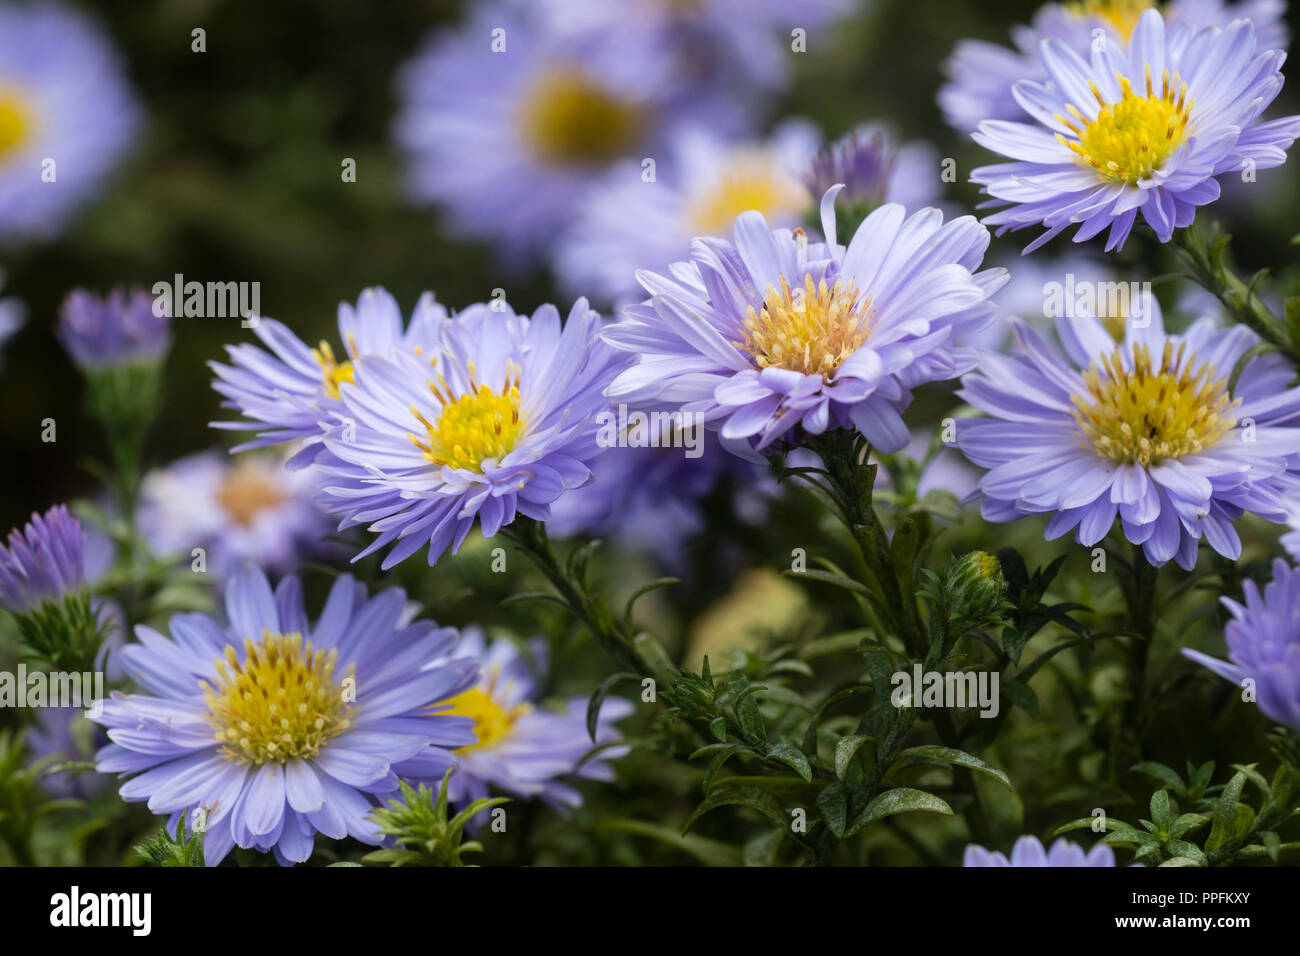 Blue ray petals and yellow centre of the autumn flowering, compact, perennial Aster x dumosus hybrid, Aster Autumn Jewels 'Aqua Compact' - Stock Image